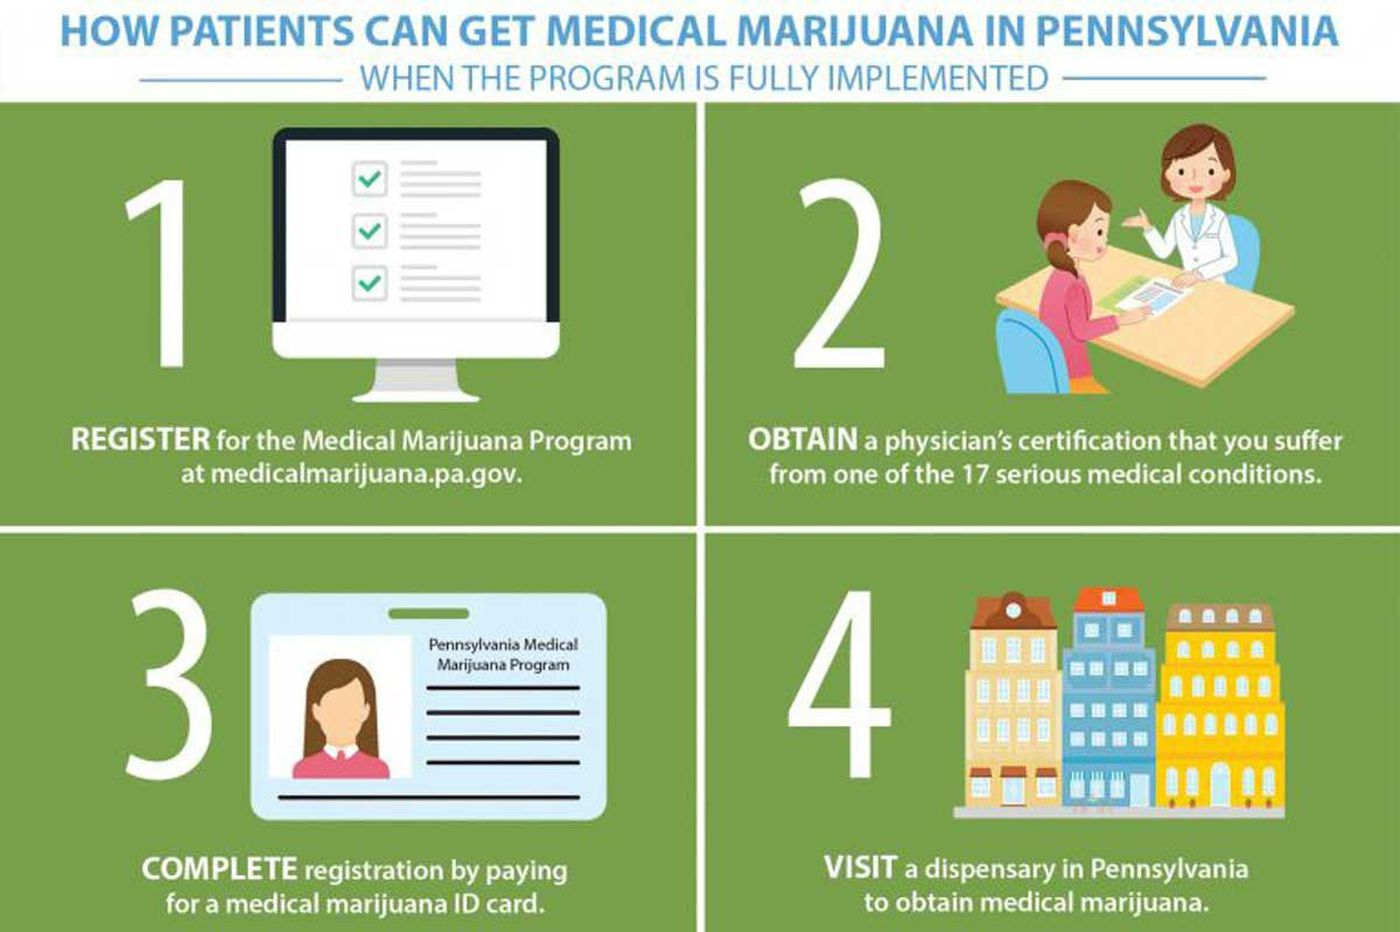 Patient response to Pa. marijuana program 'extremely positive'